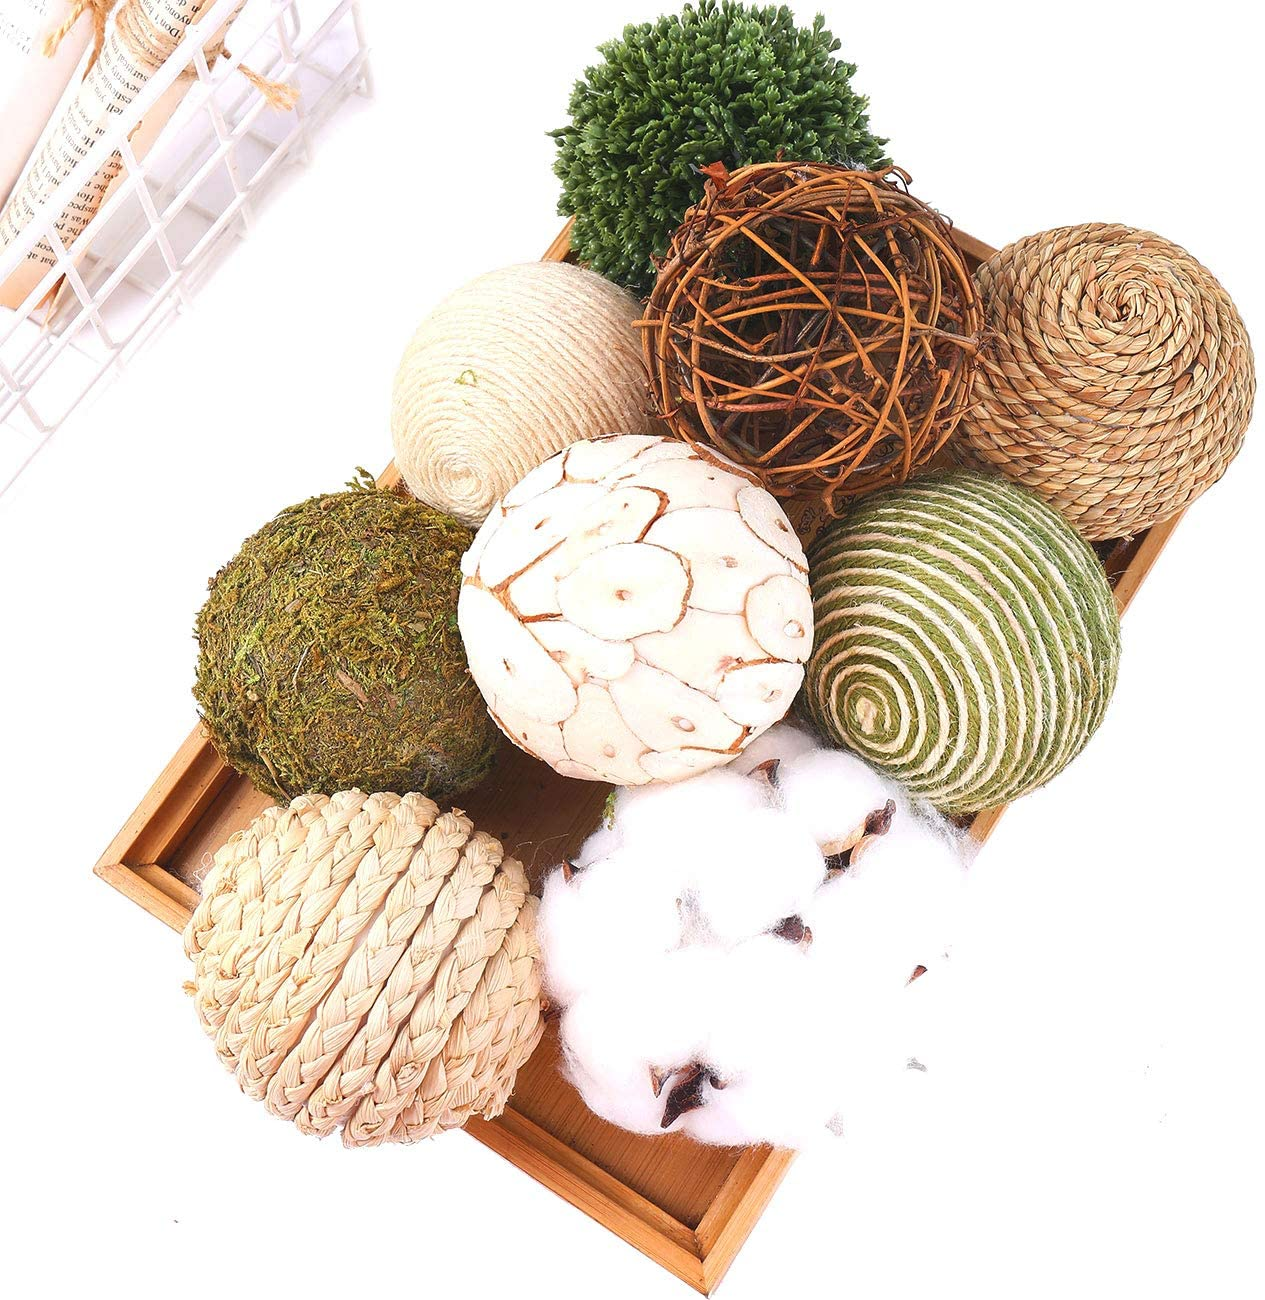 Ciroases 9pcs 3.5Inch Fall Decorative Ball Orb Rattan Ball Rattan Woven Orbs Spherical Bowl and Vase Filler for Home Party Wedding Display Decor Props … (Green)